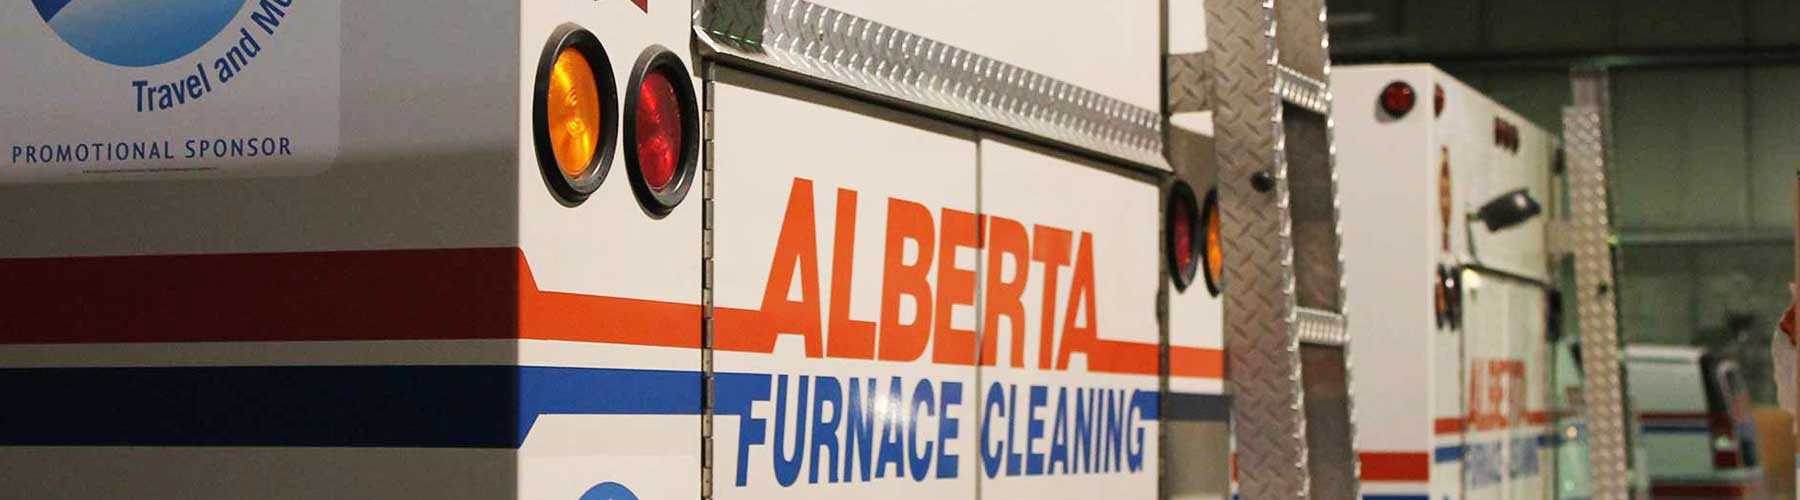 Alberta Furnace Cleaning Trucks